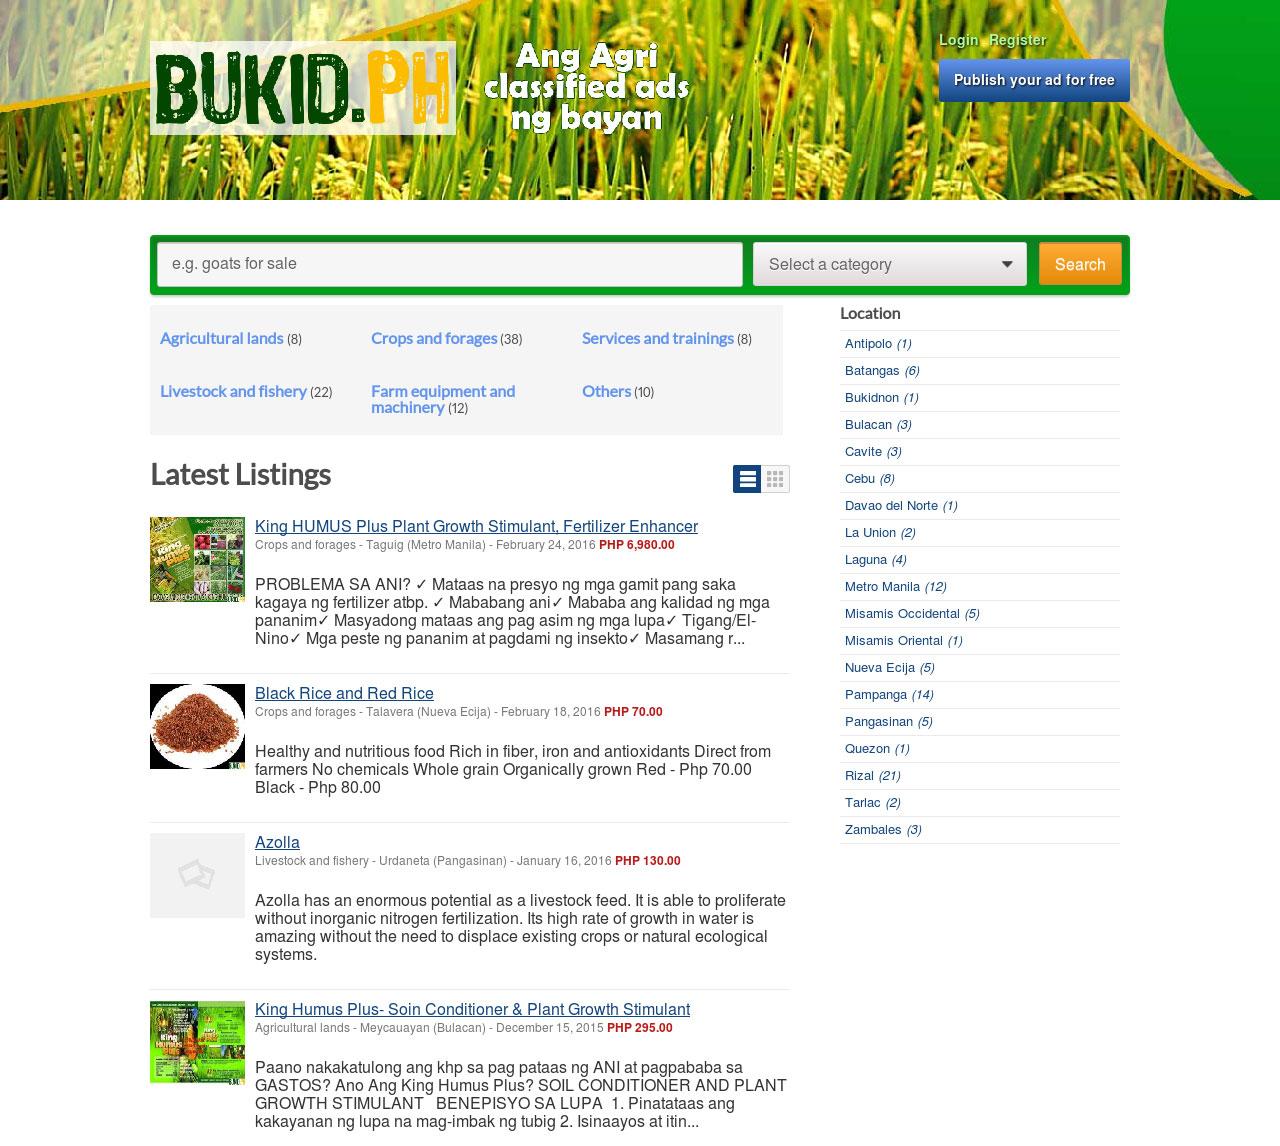 Bukid.ph Ang agri classified ads ng bayan